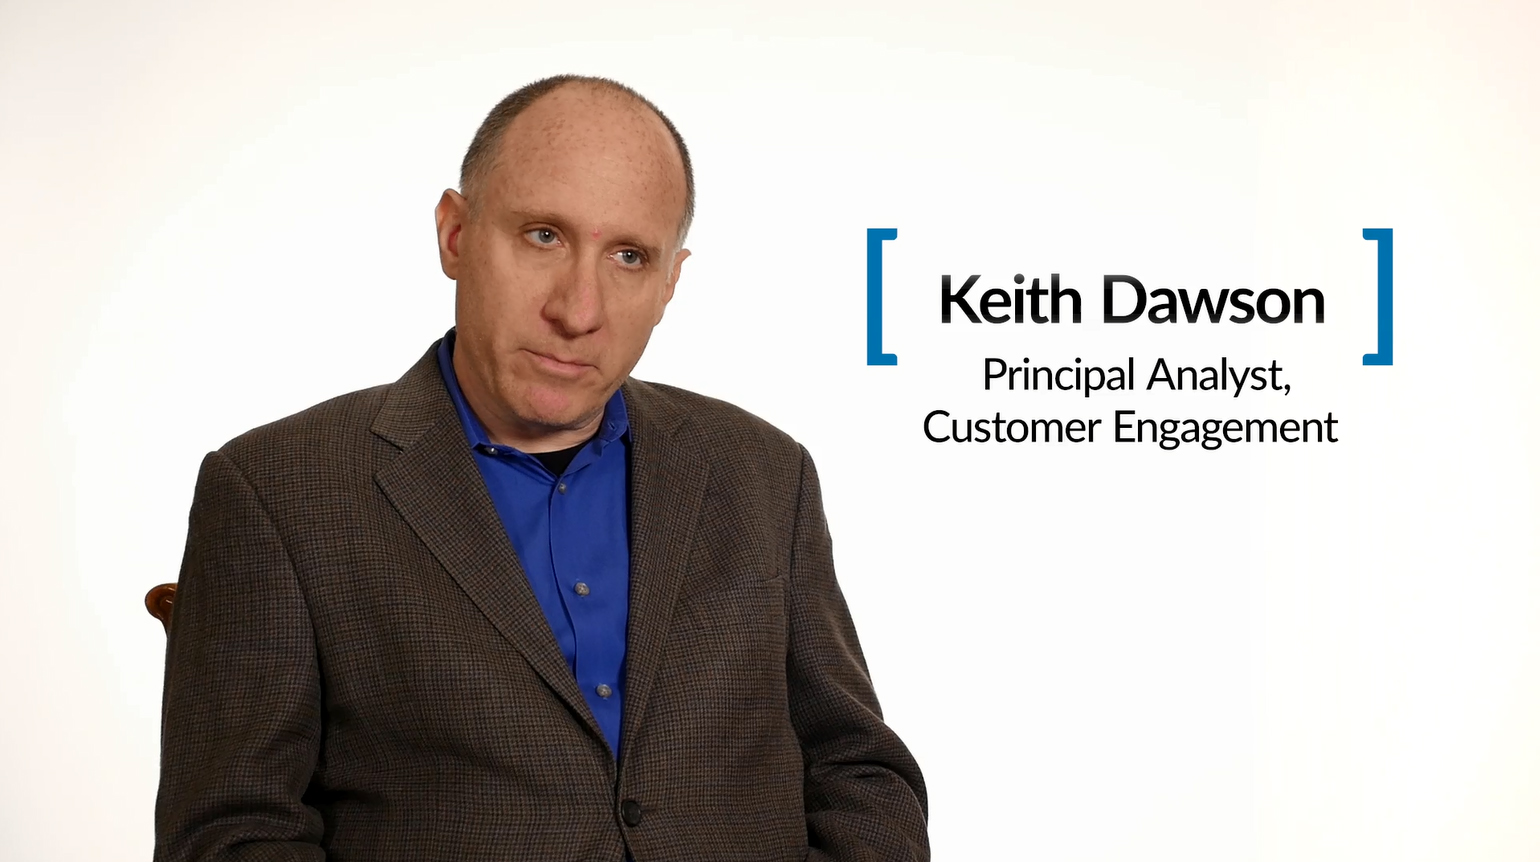 Keith Dawson shares best practices